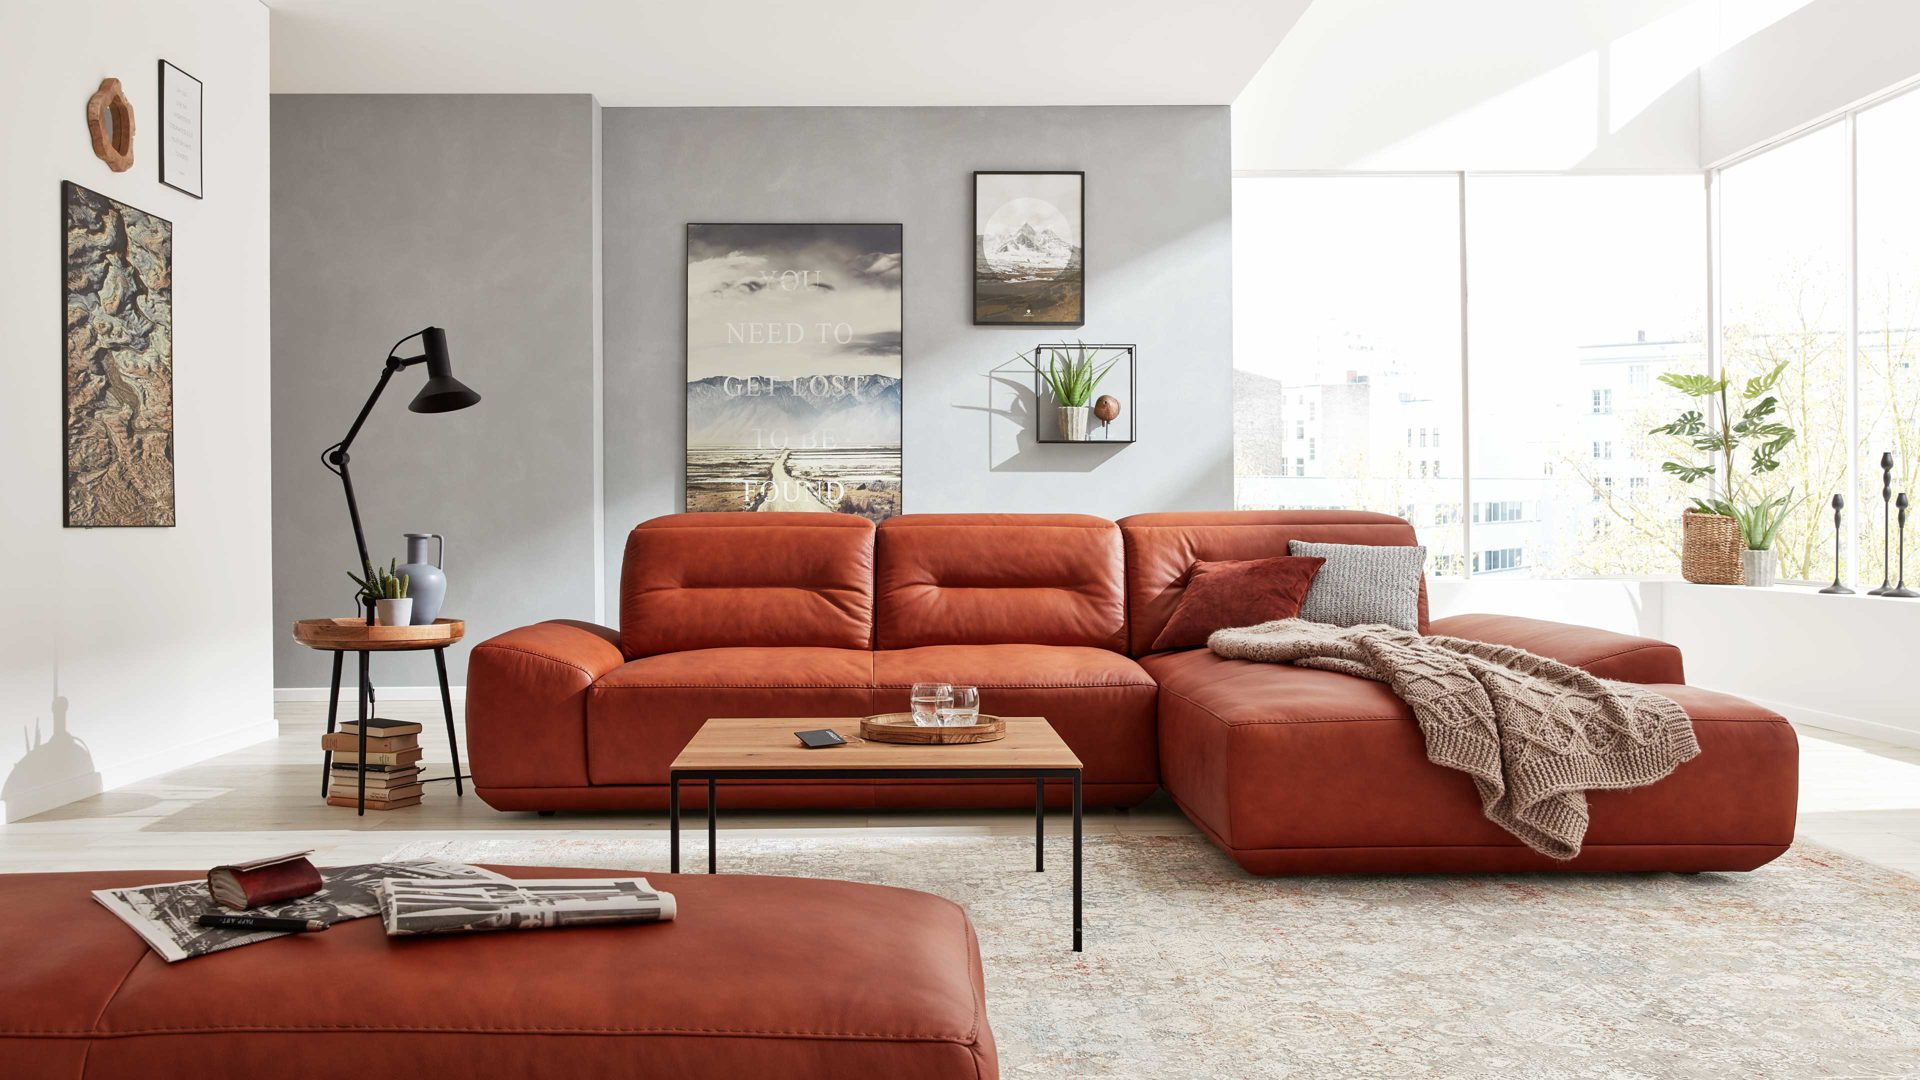 Ecksofa Interliving aus Leder in Orange Interliving Sofa Serie 4000 – Ecksofa cognacfarbenes Leder Z31.50 – Stellfläche ca. 310 x 209 cm